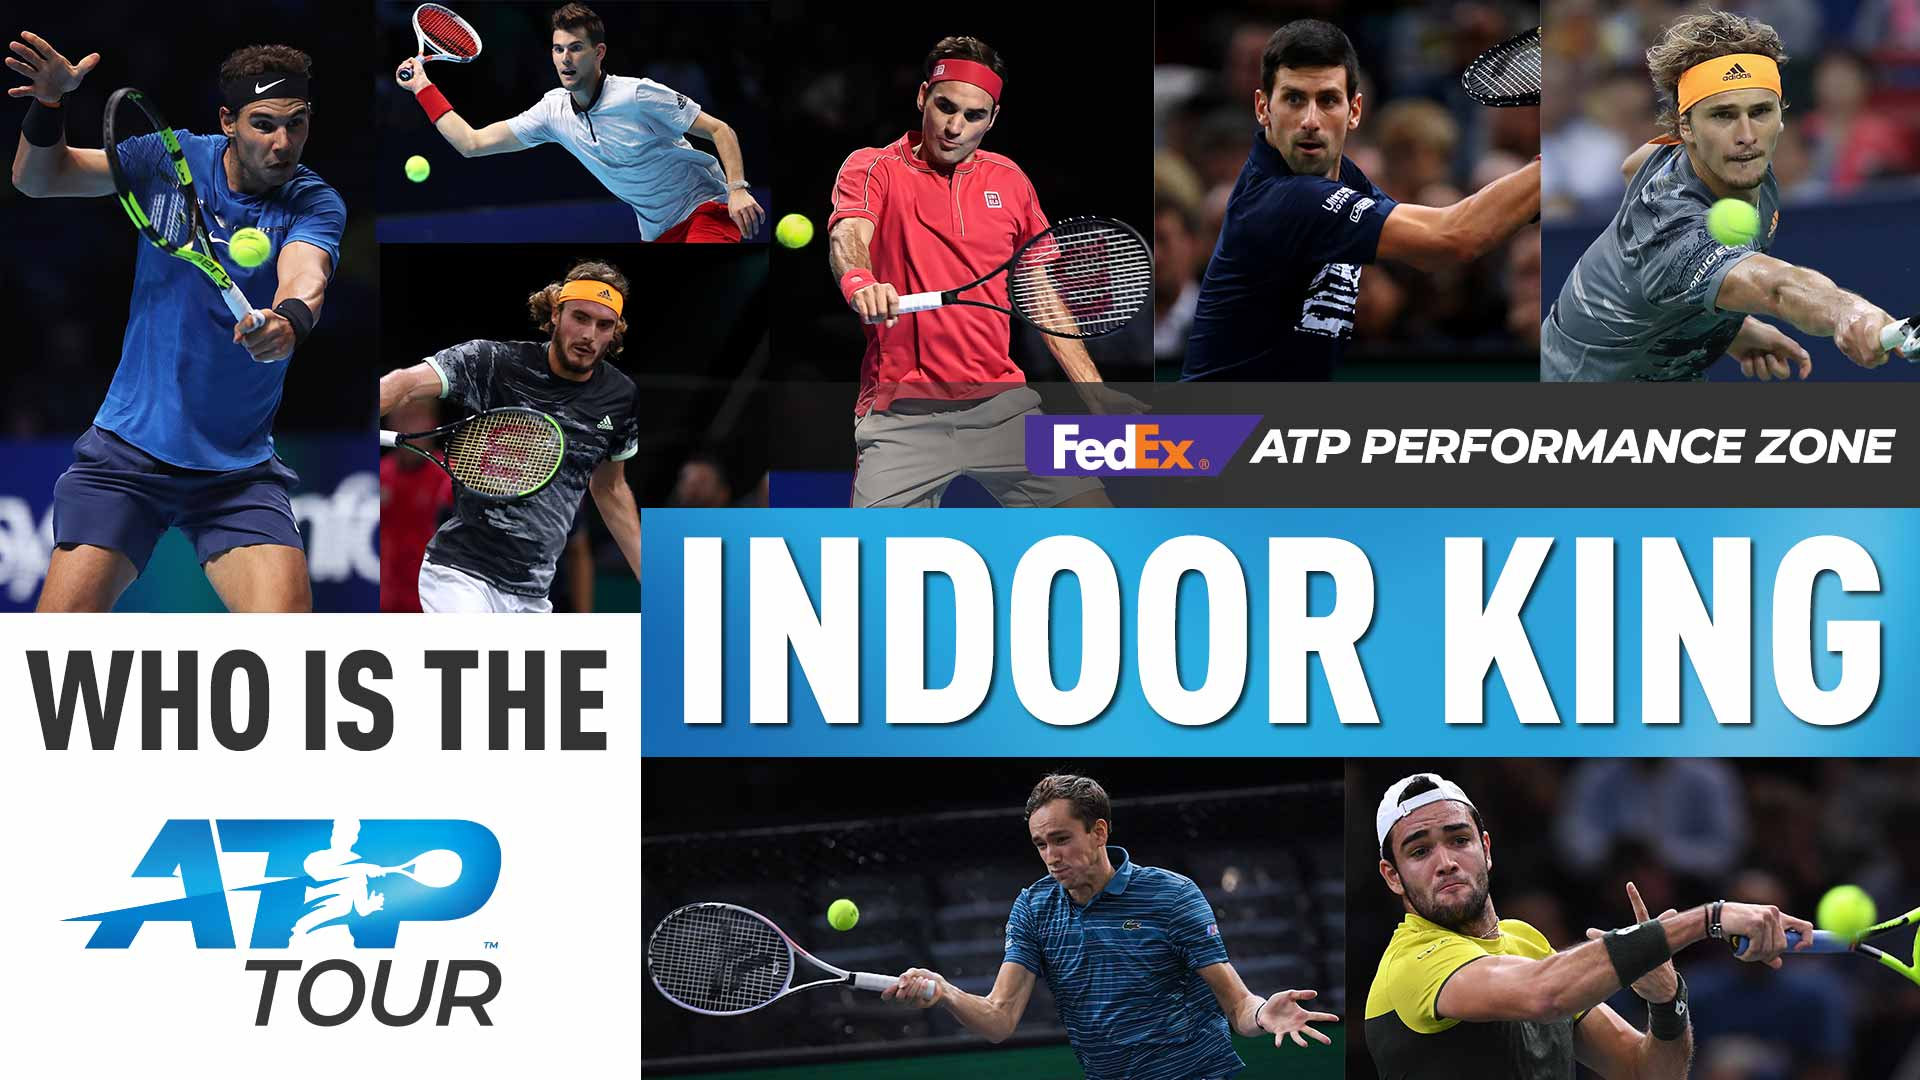 Who Is The Indoor Kind?